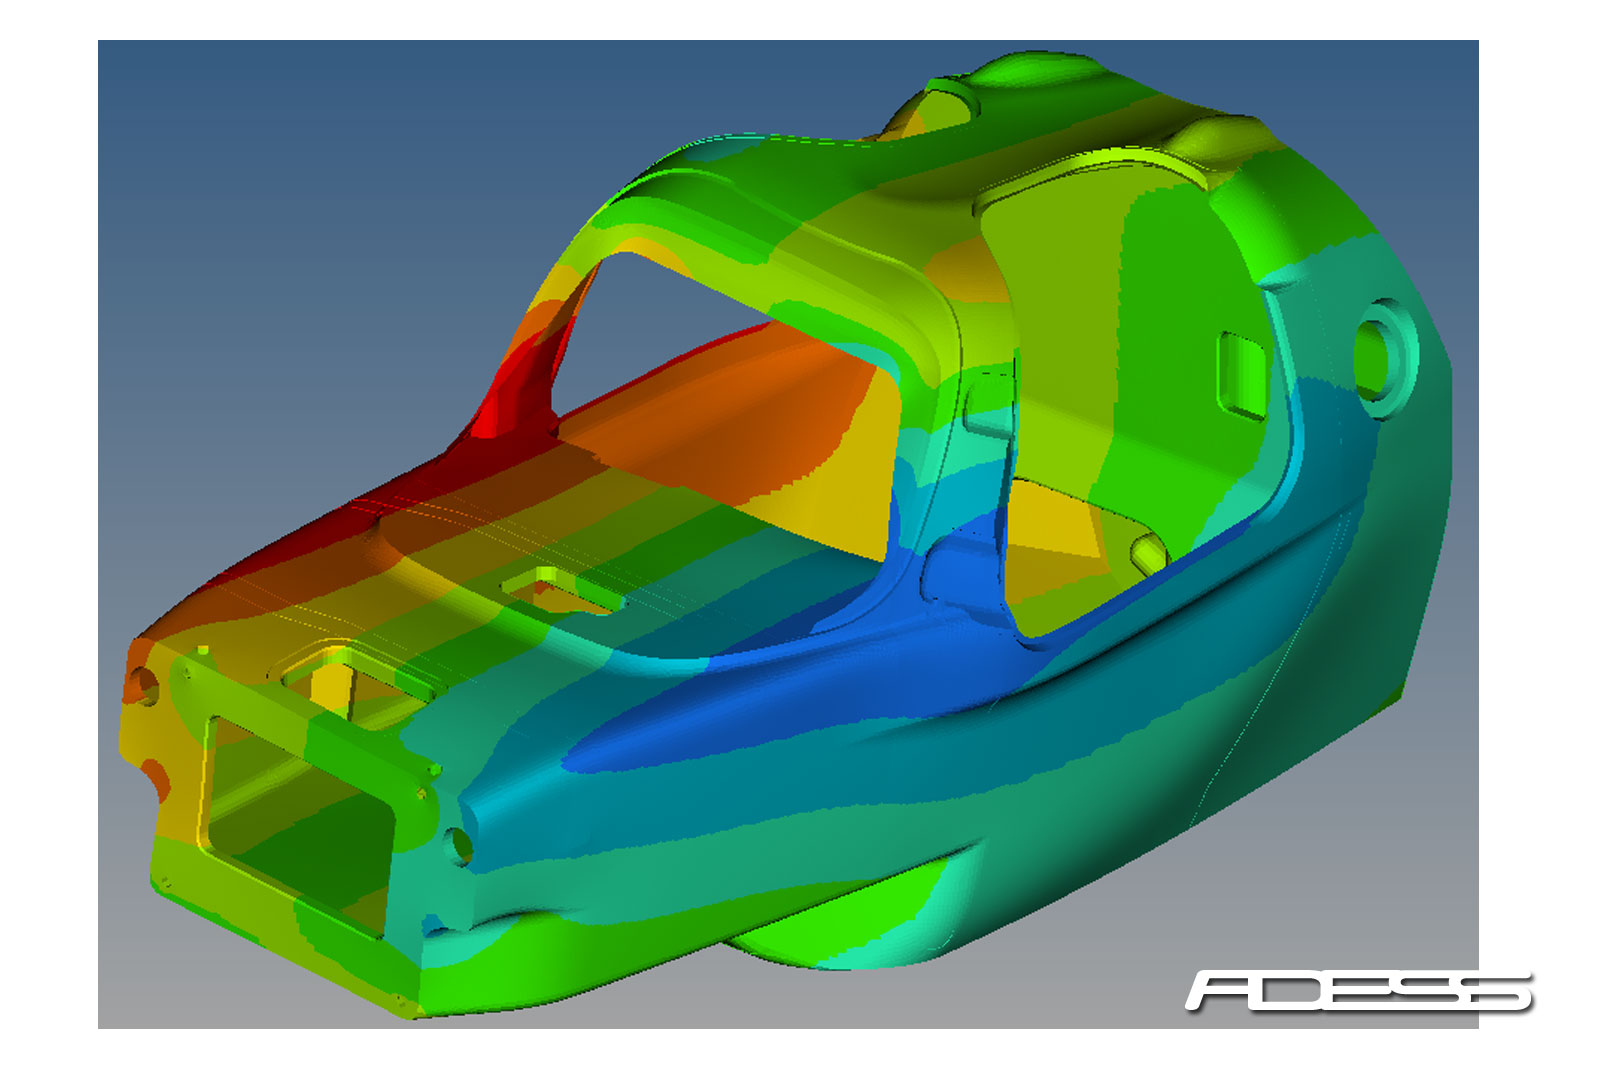 Torsional stiffness FEA calculation